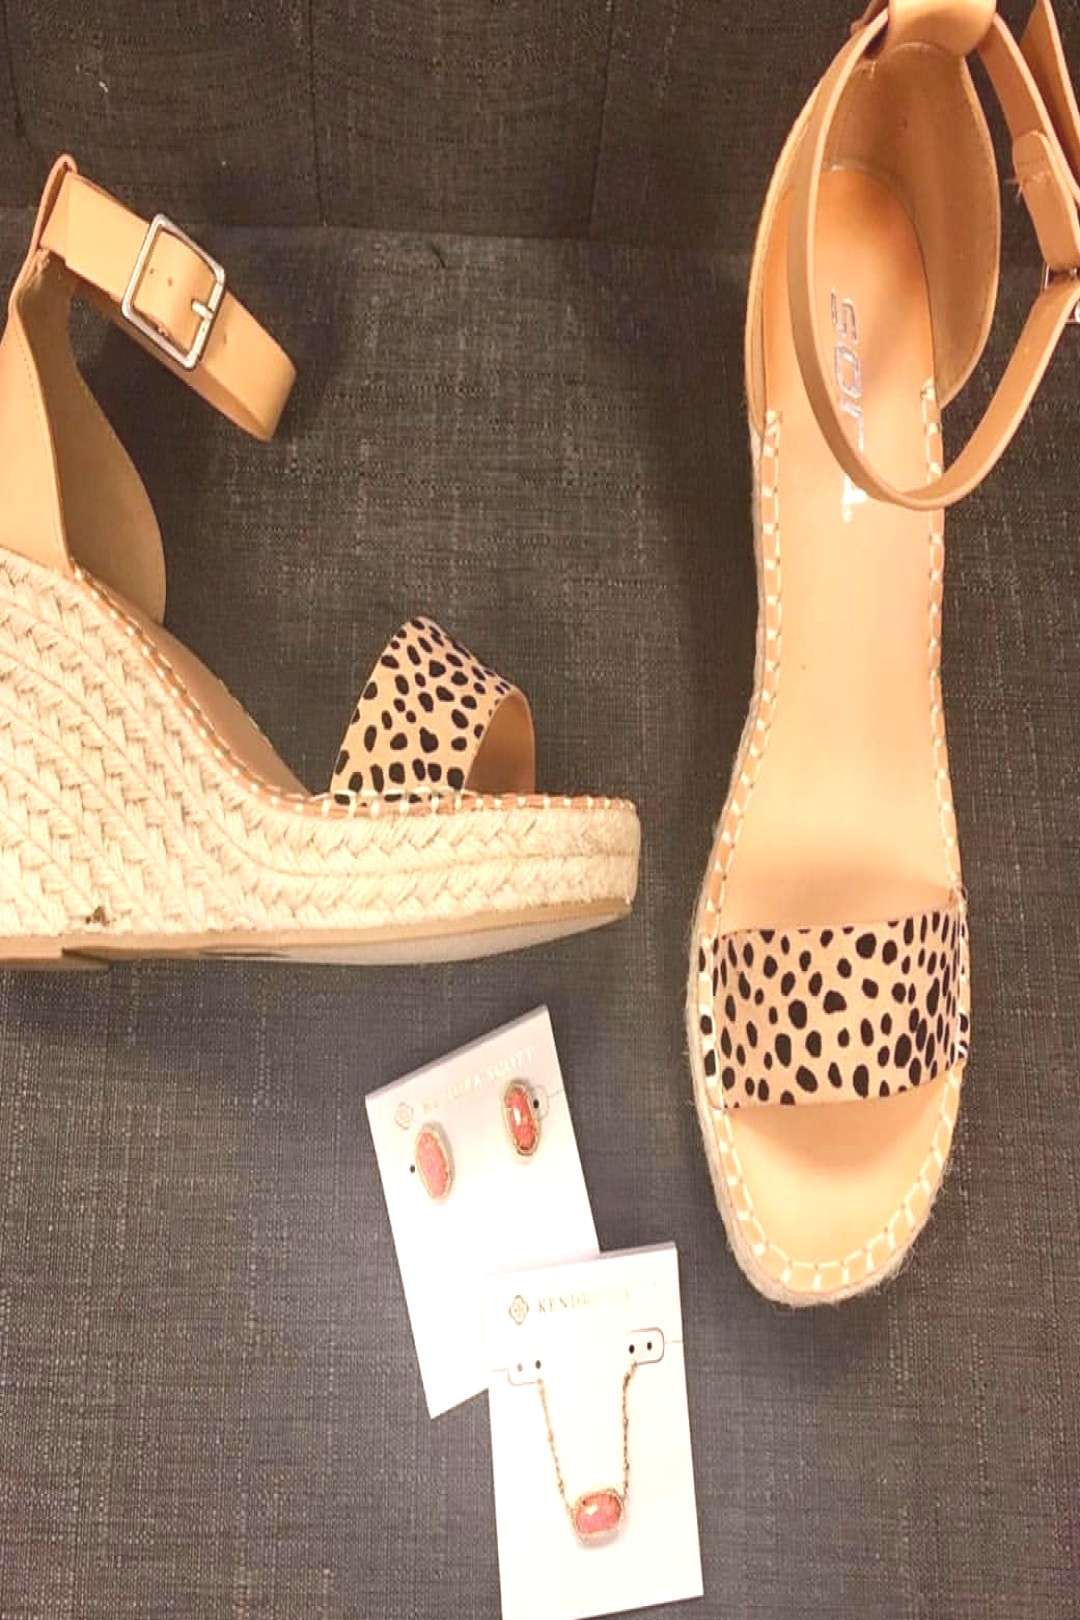 Bling New Market West Wichita on June 09 2020 shoes